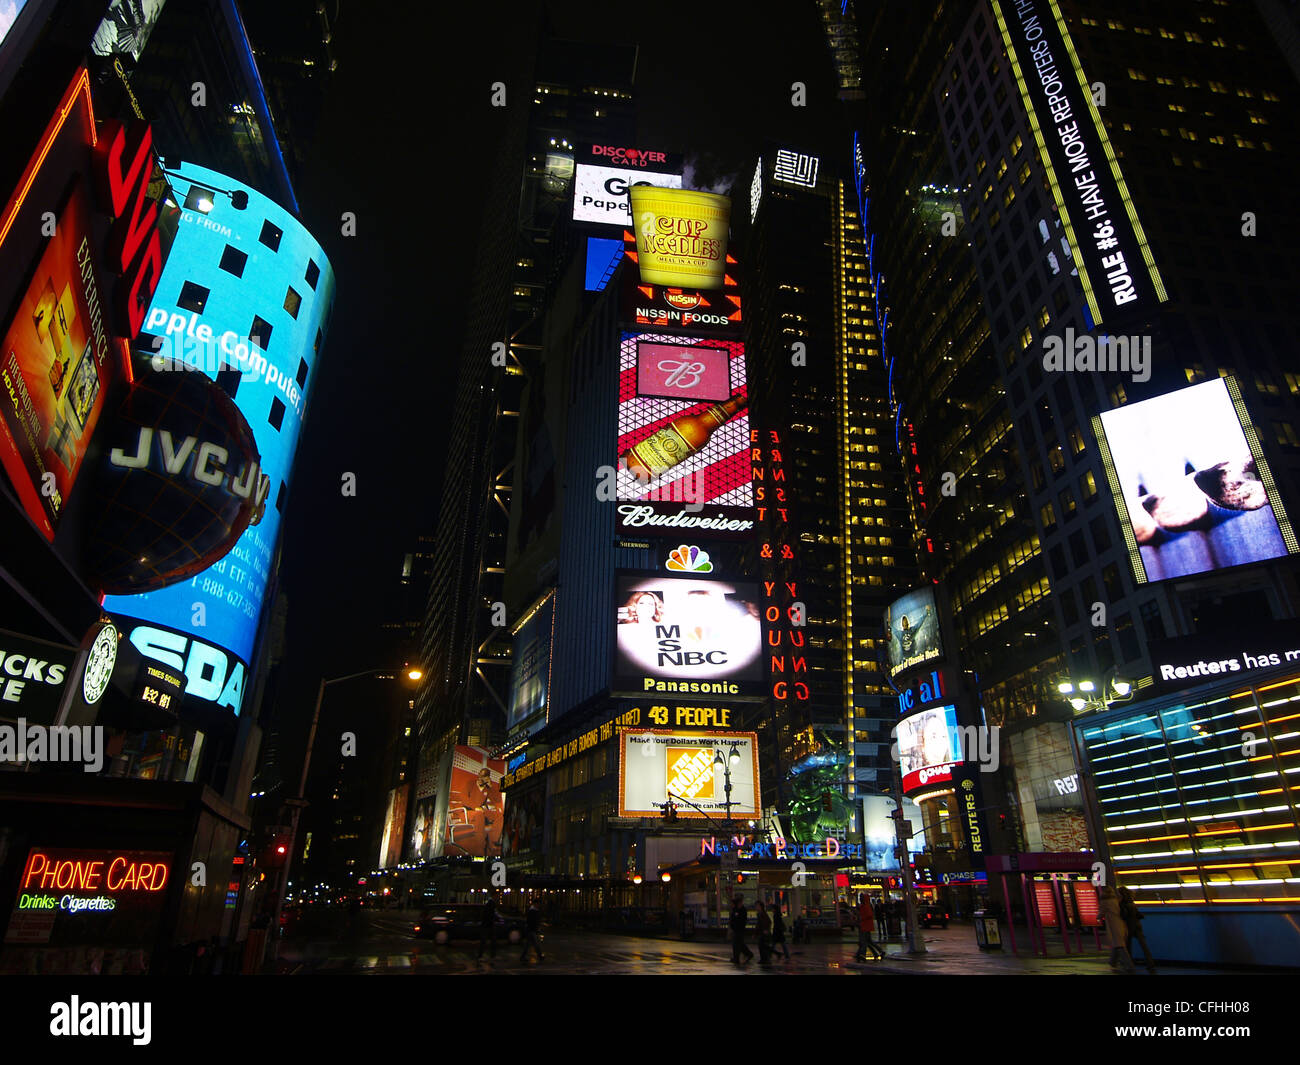 The colorful neon signs at Times Square in New York at night - Stock Image